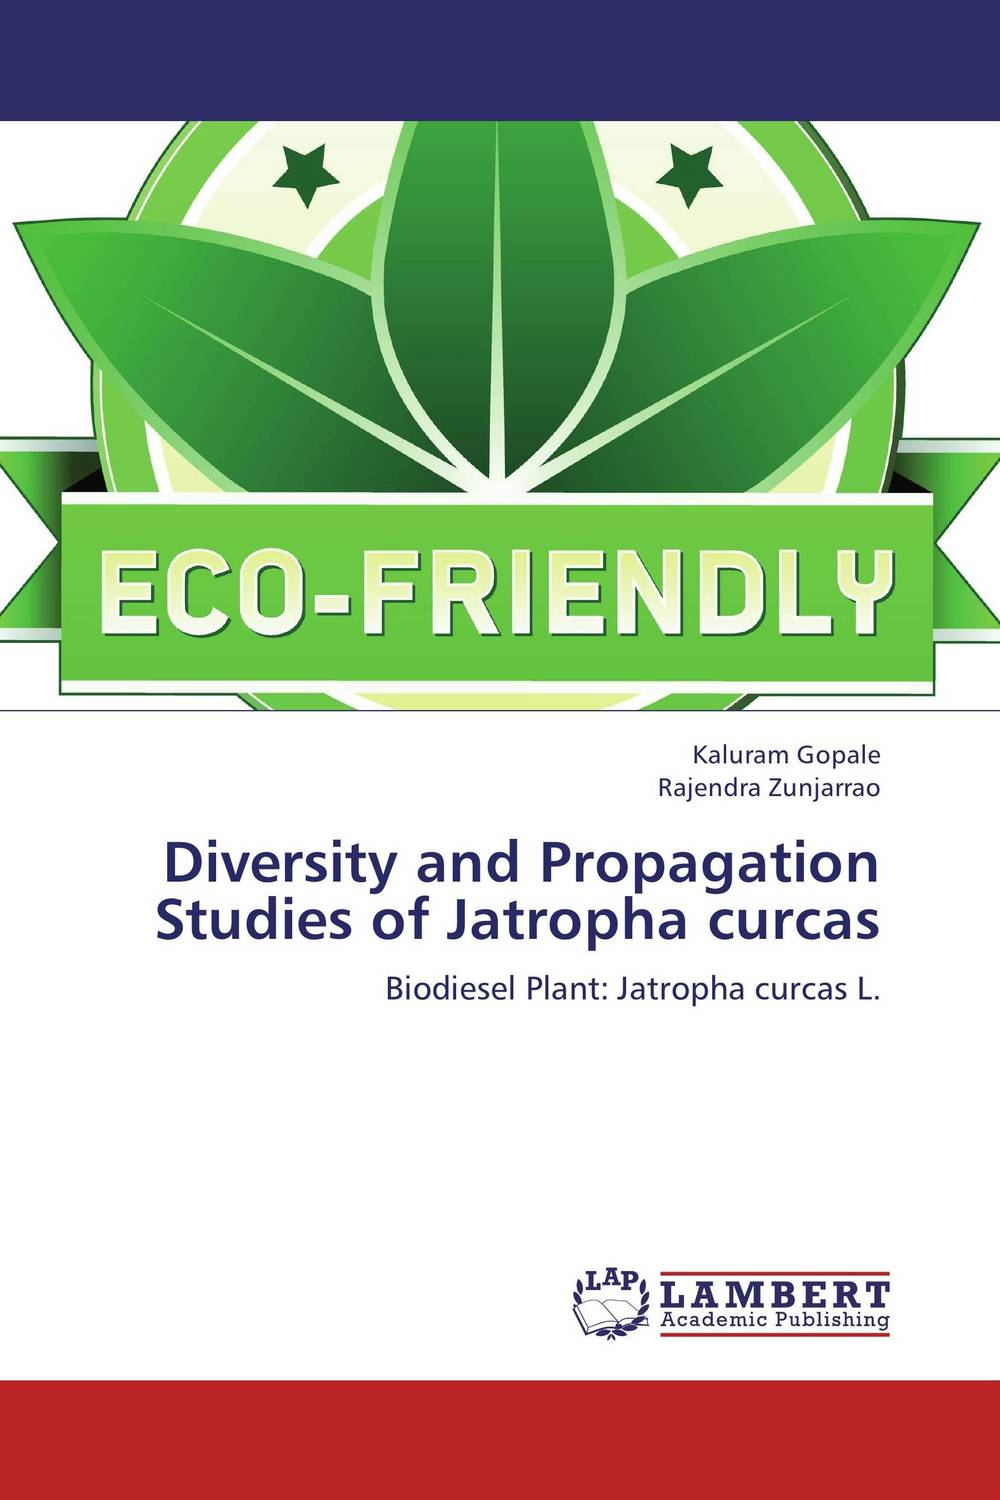 Diversity and Propagation Studies of Jatropha curcas muhammad firdaus sulaiman estimation of carbon footprint in jatropha curcas seed production